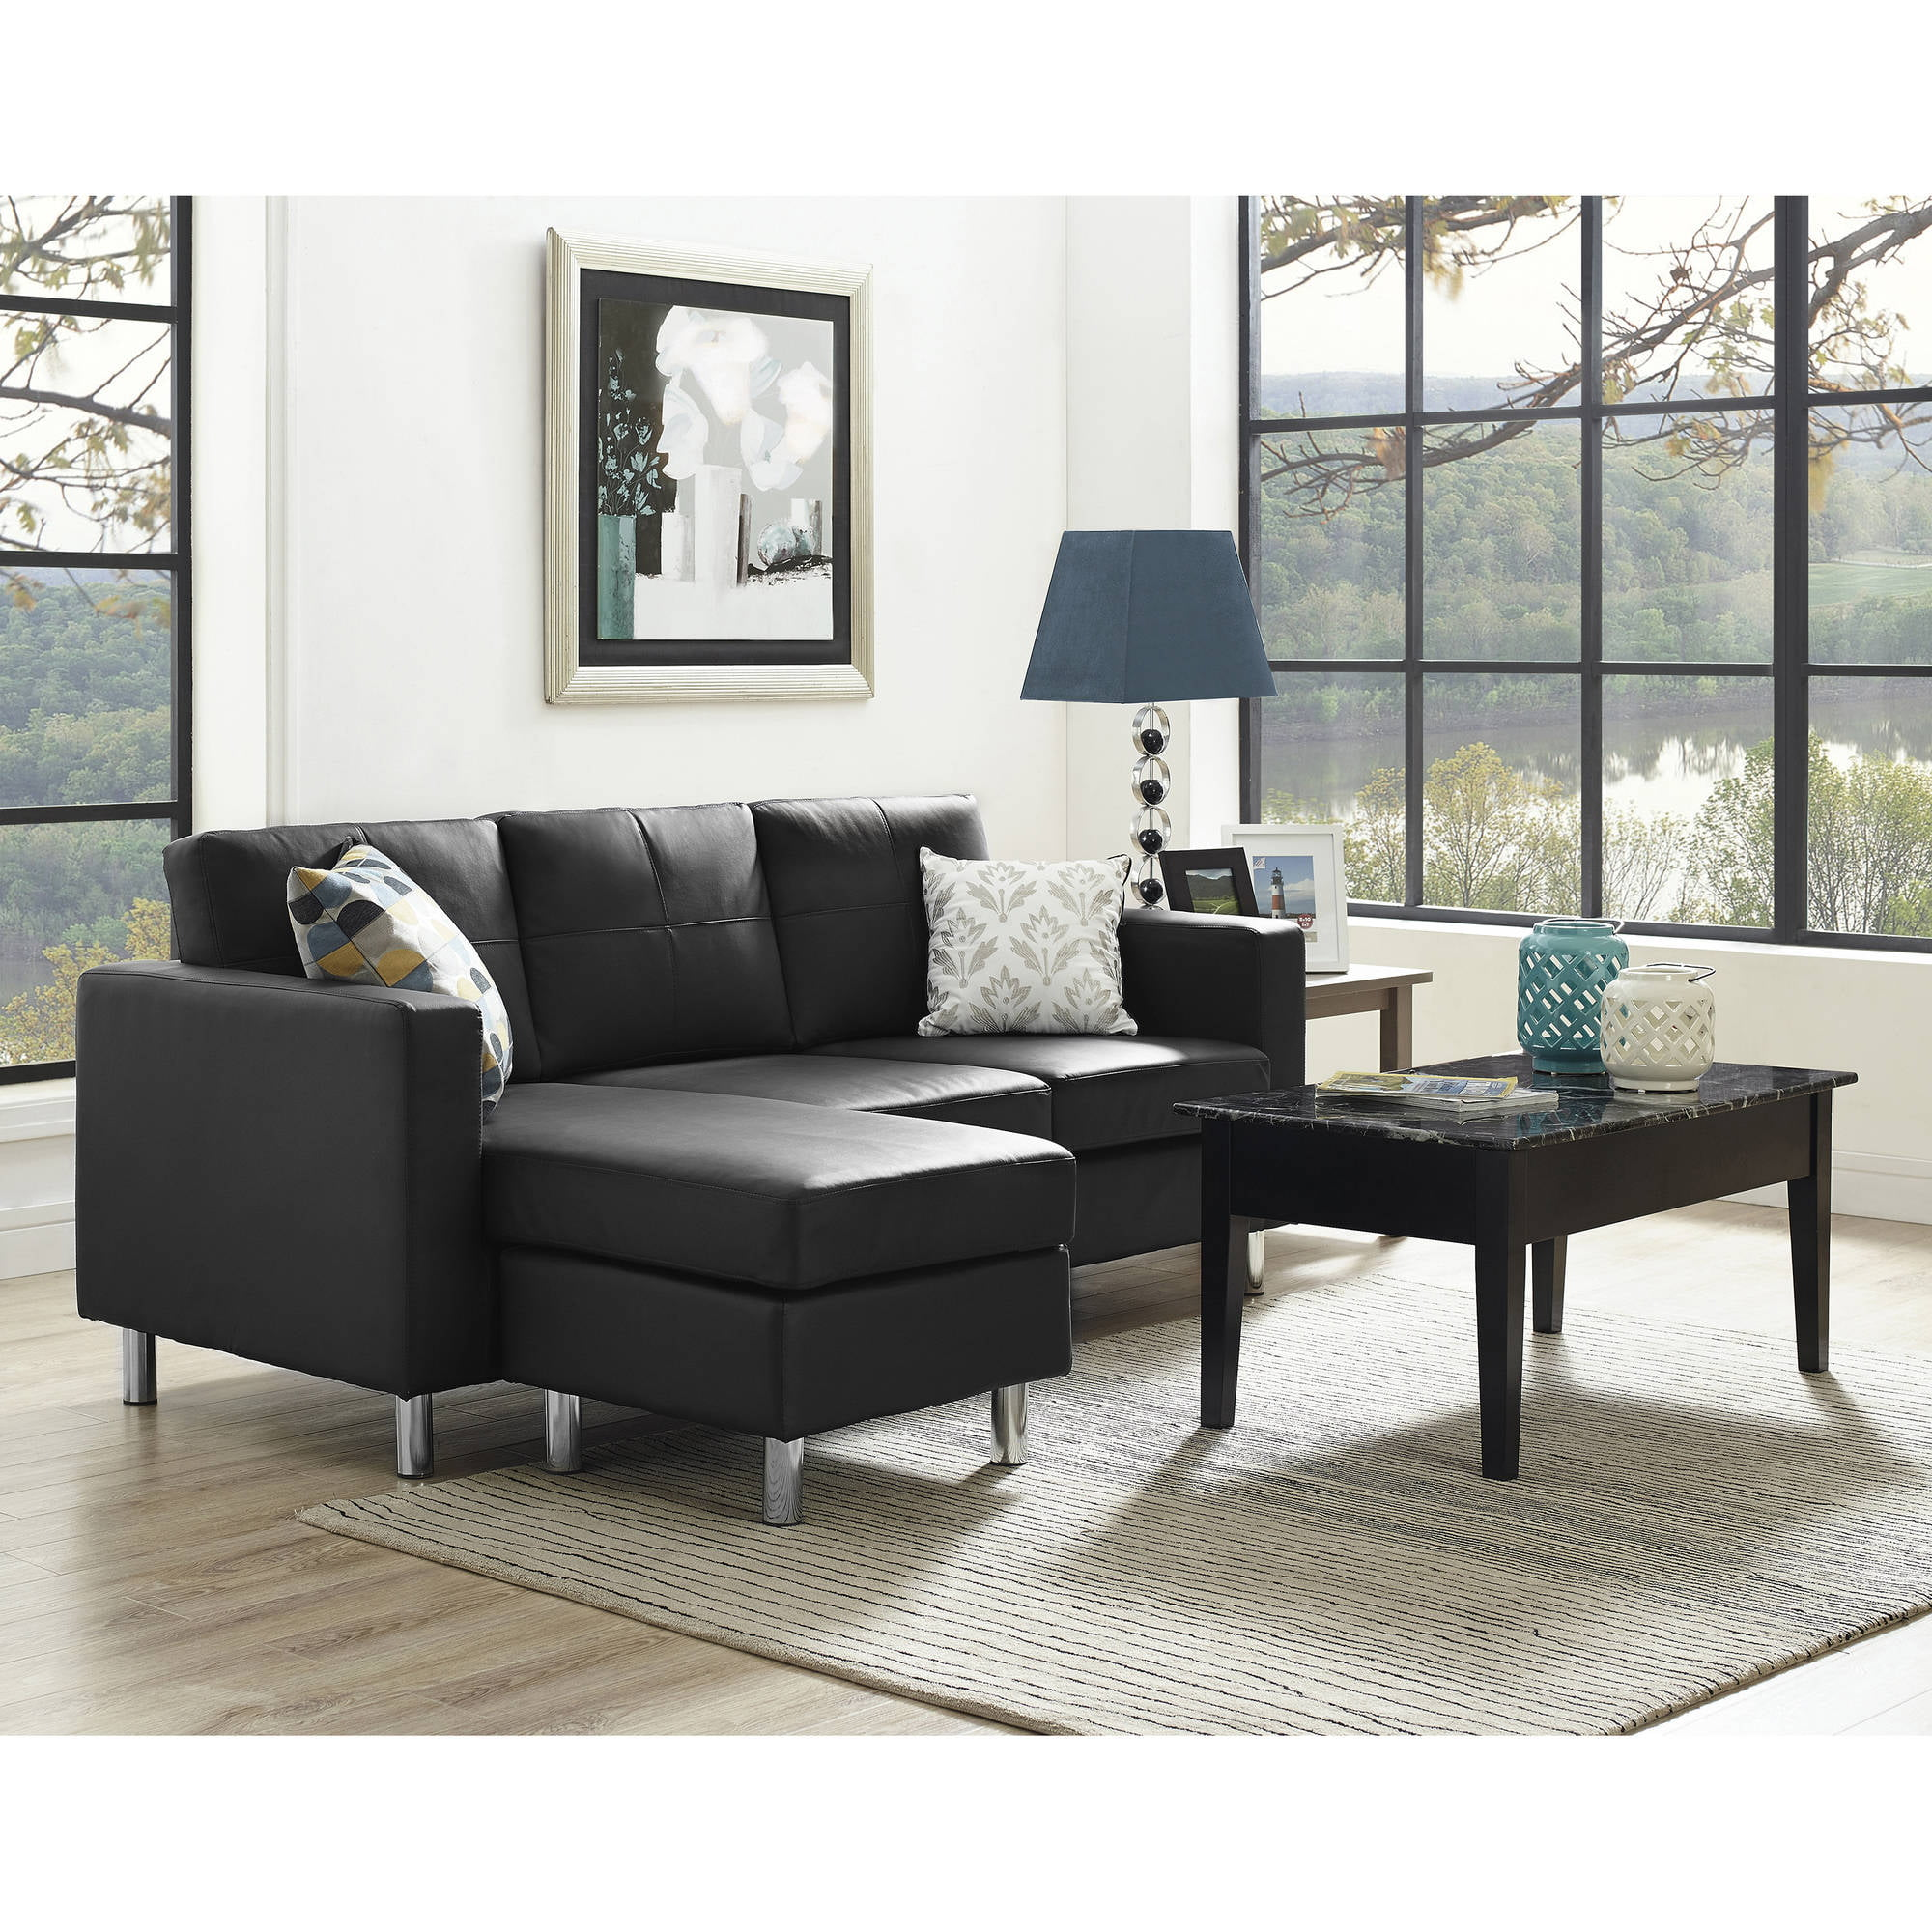 Dorel Living Small Spaces Configurable Sectional Sofa ...